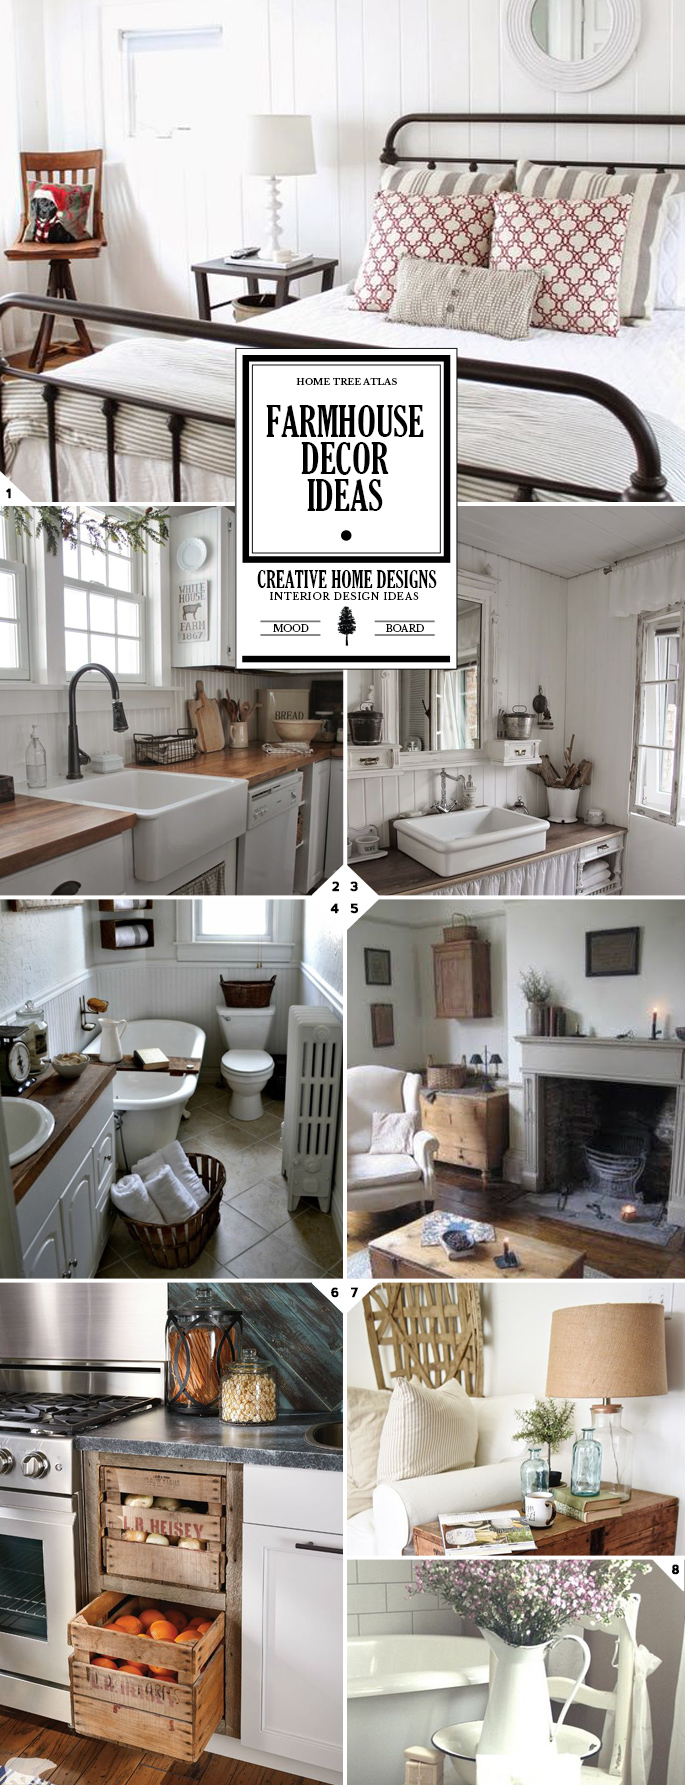 Vintage And Rustic Farmhouse Decor Ideas Design Guide: vintage house decor